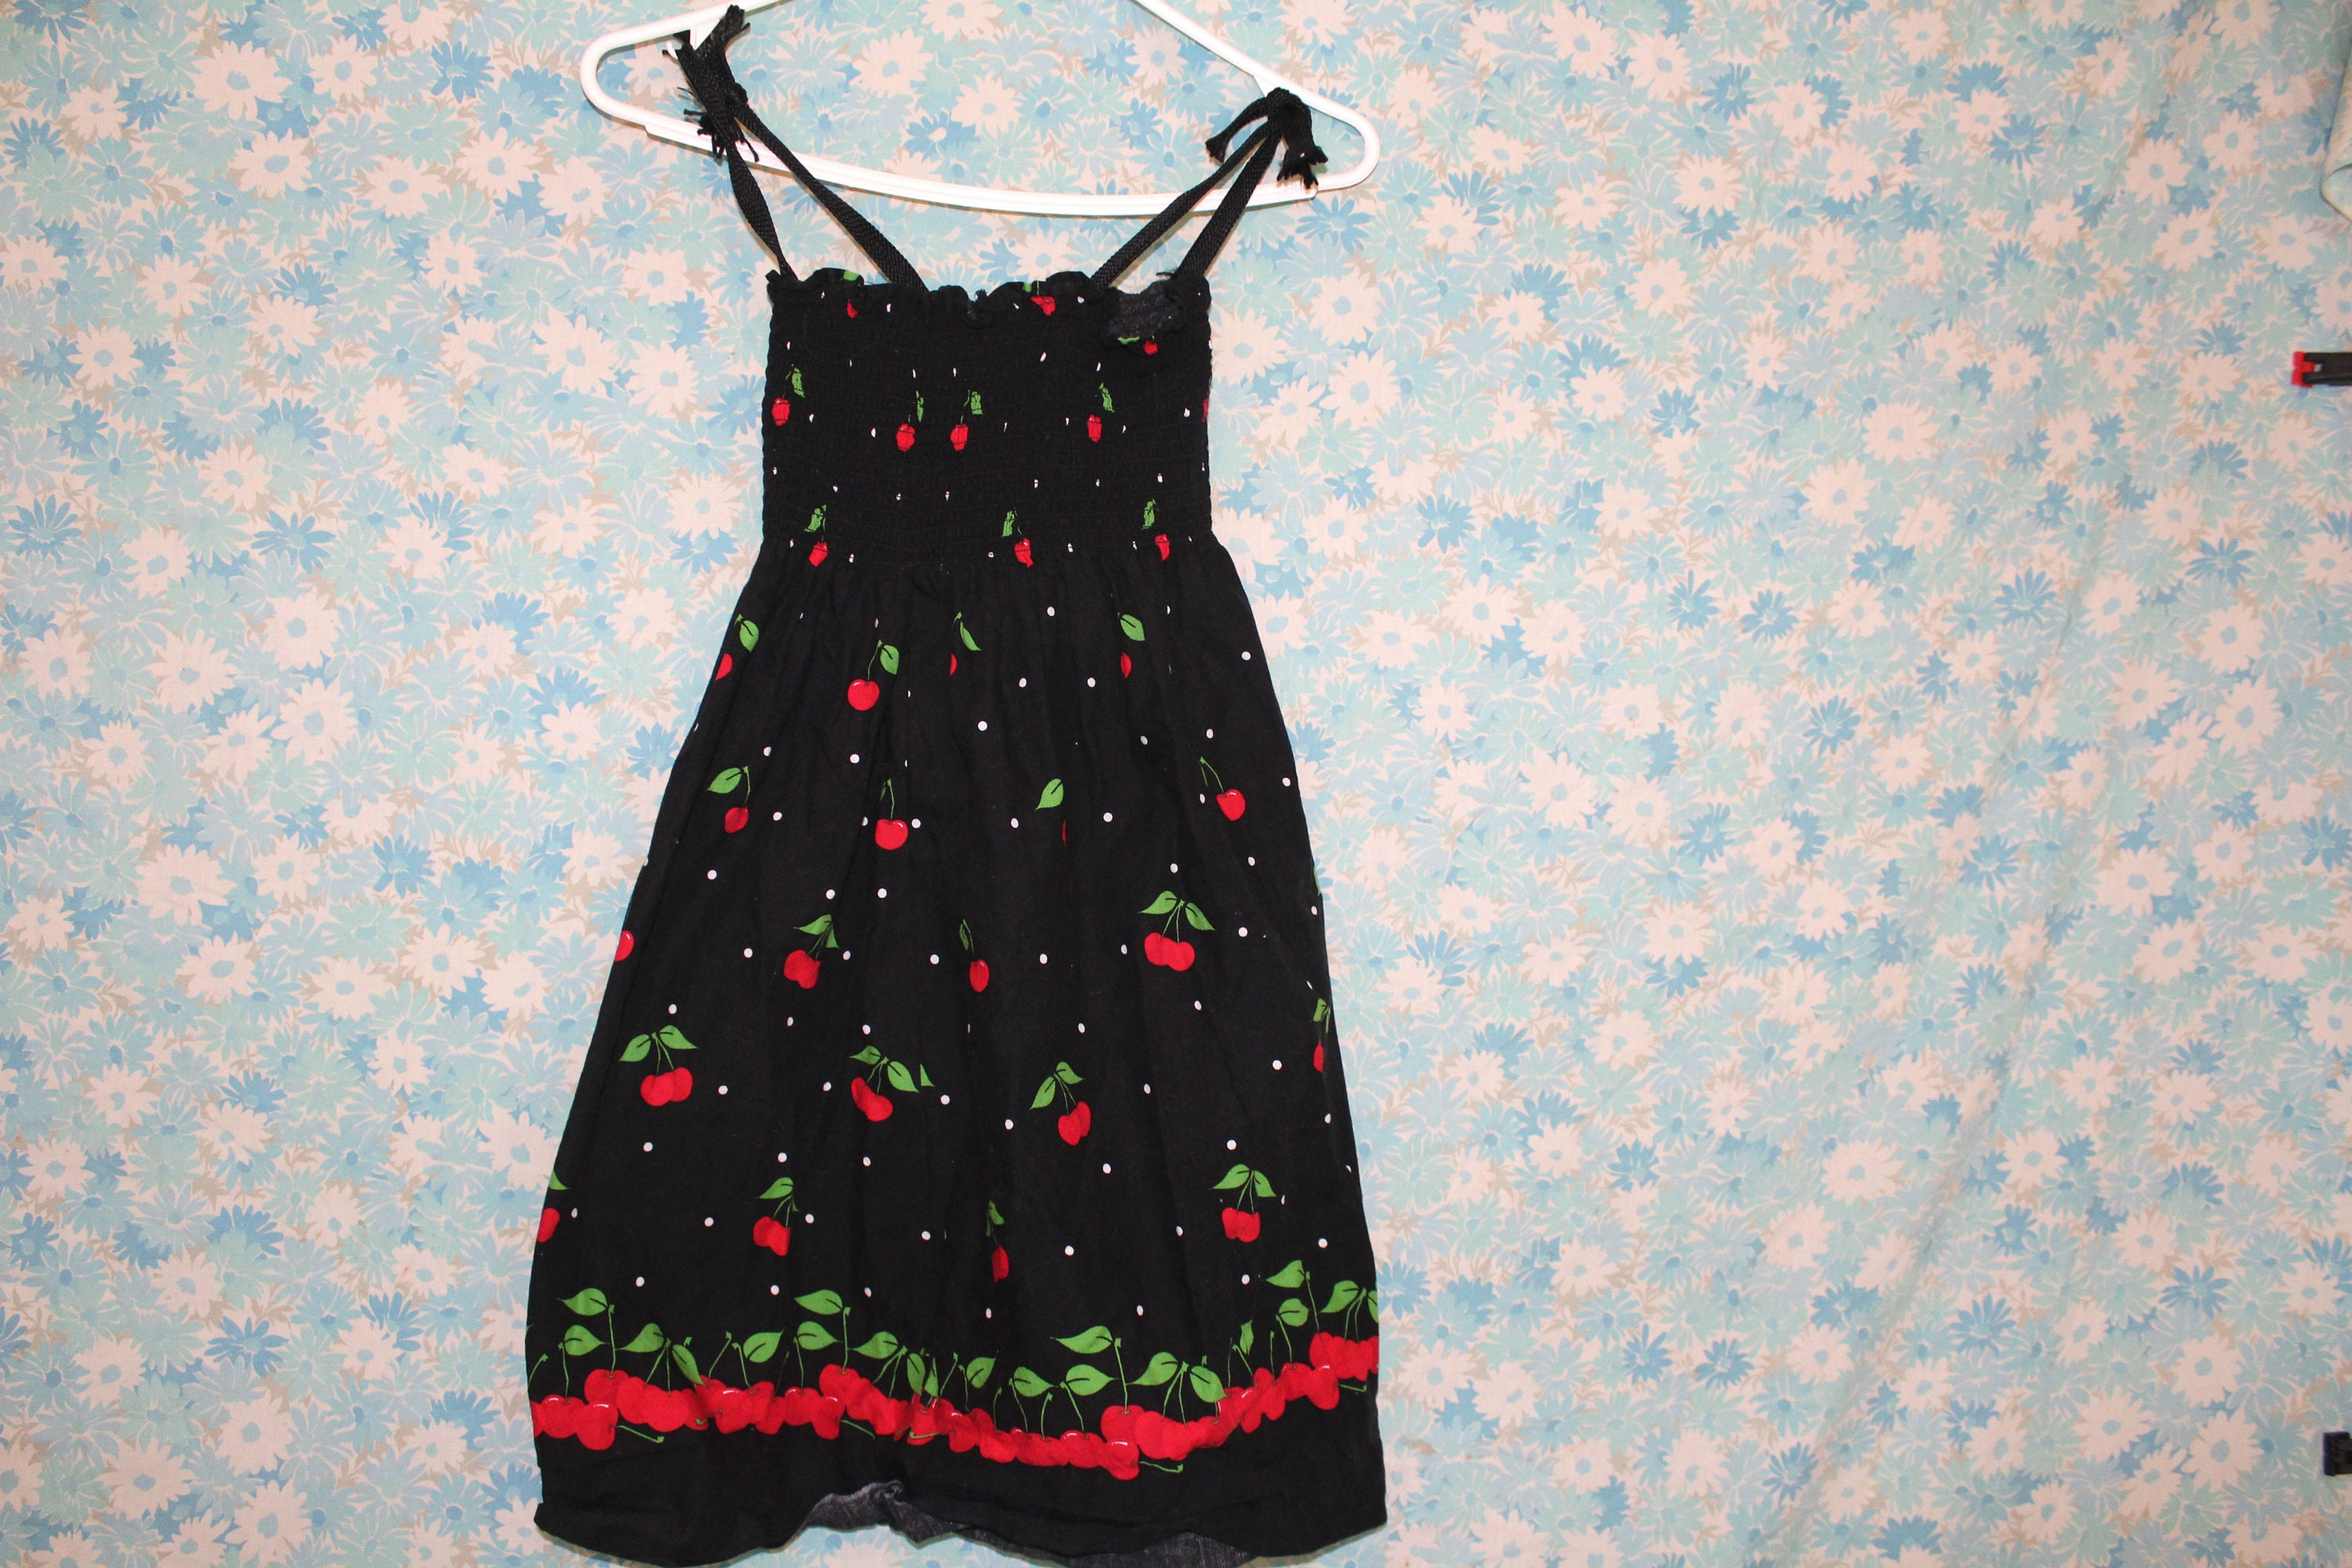 cc32040756 90s Handmade Stretchy Cherry Print Short Summer Dress. Hand Sewn ...